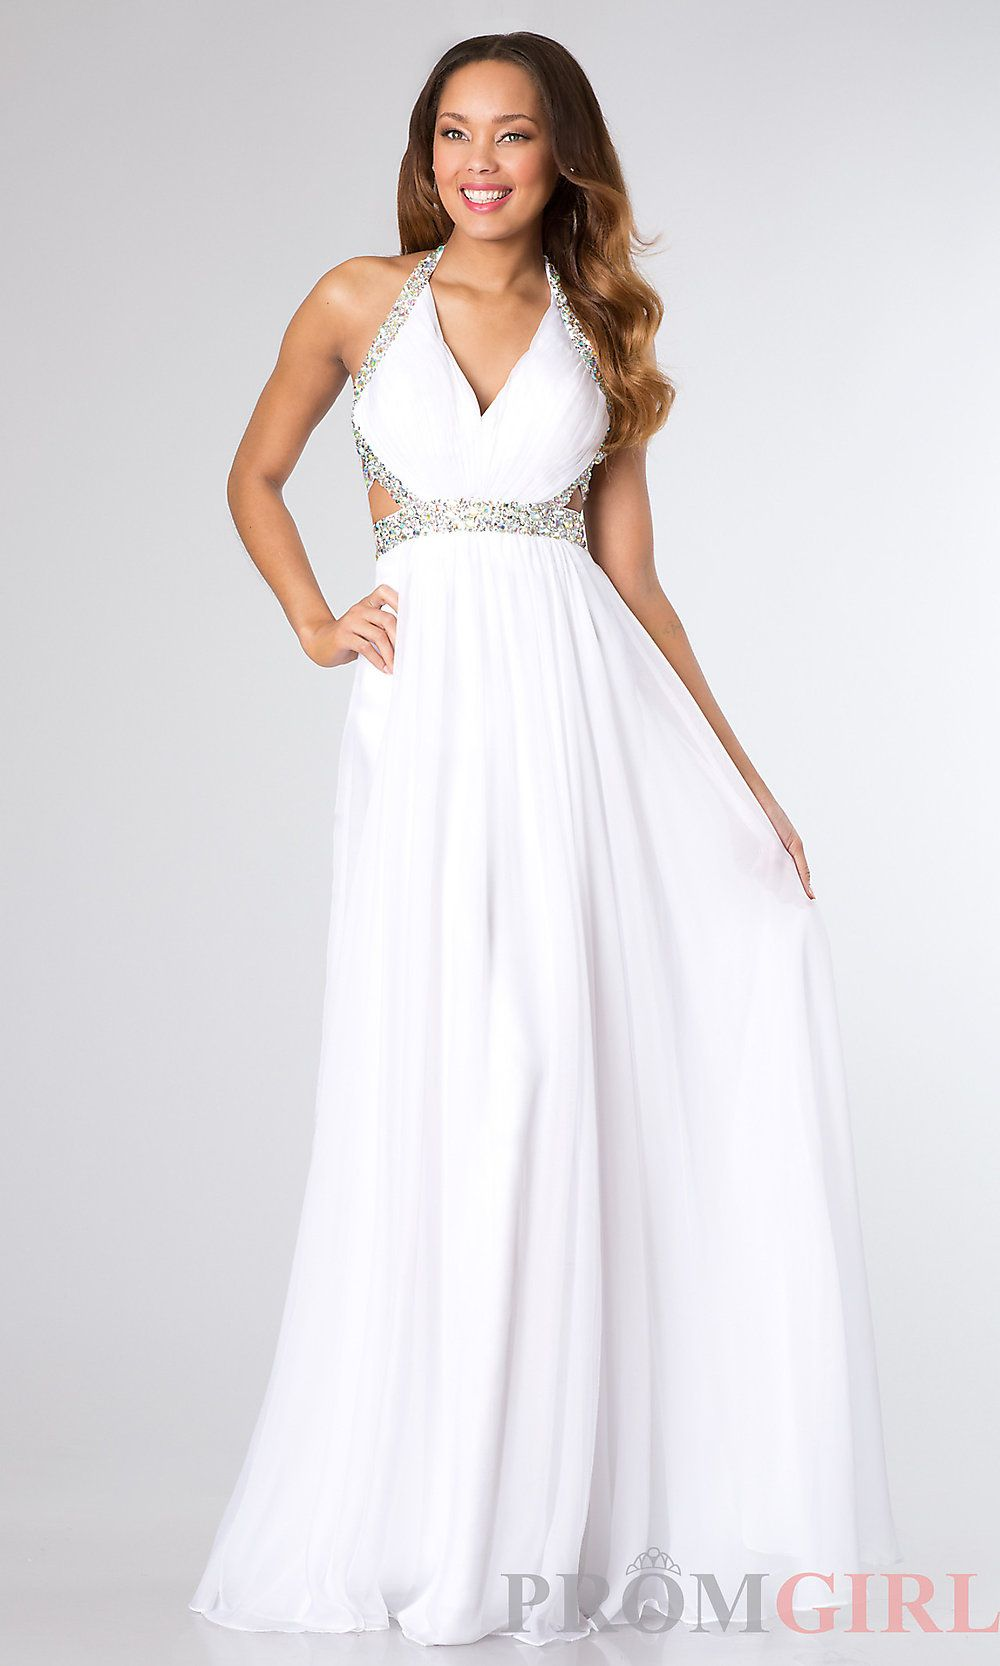 Long Cut Out Prom Dresses Long Halter Gowns for Prom PromGirl